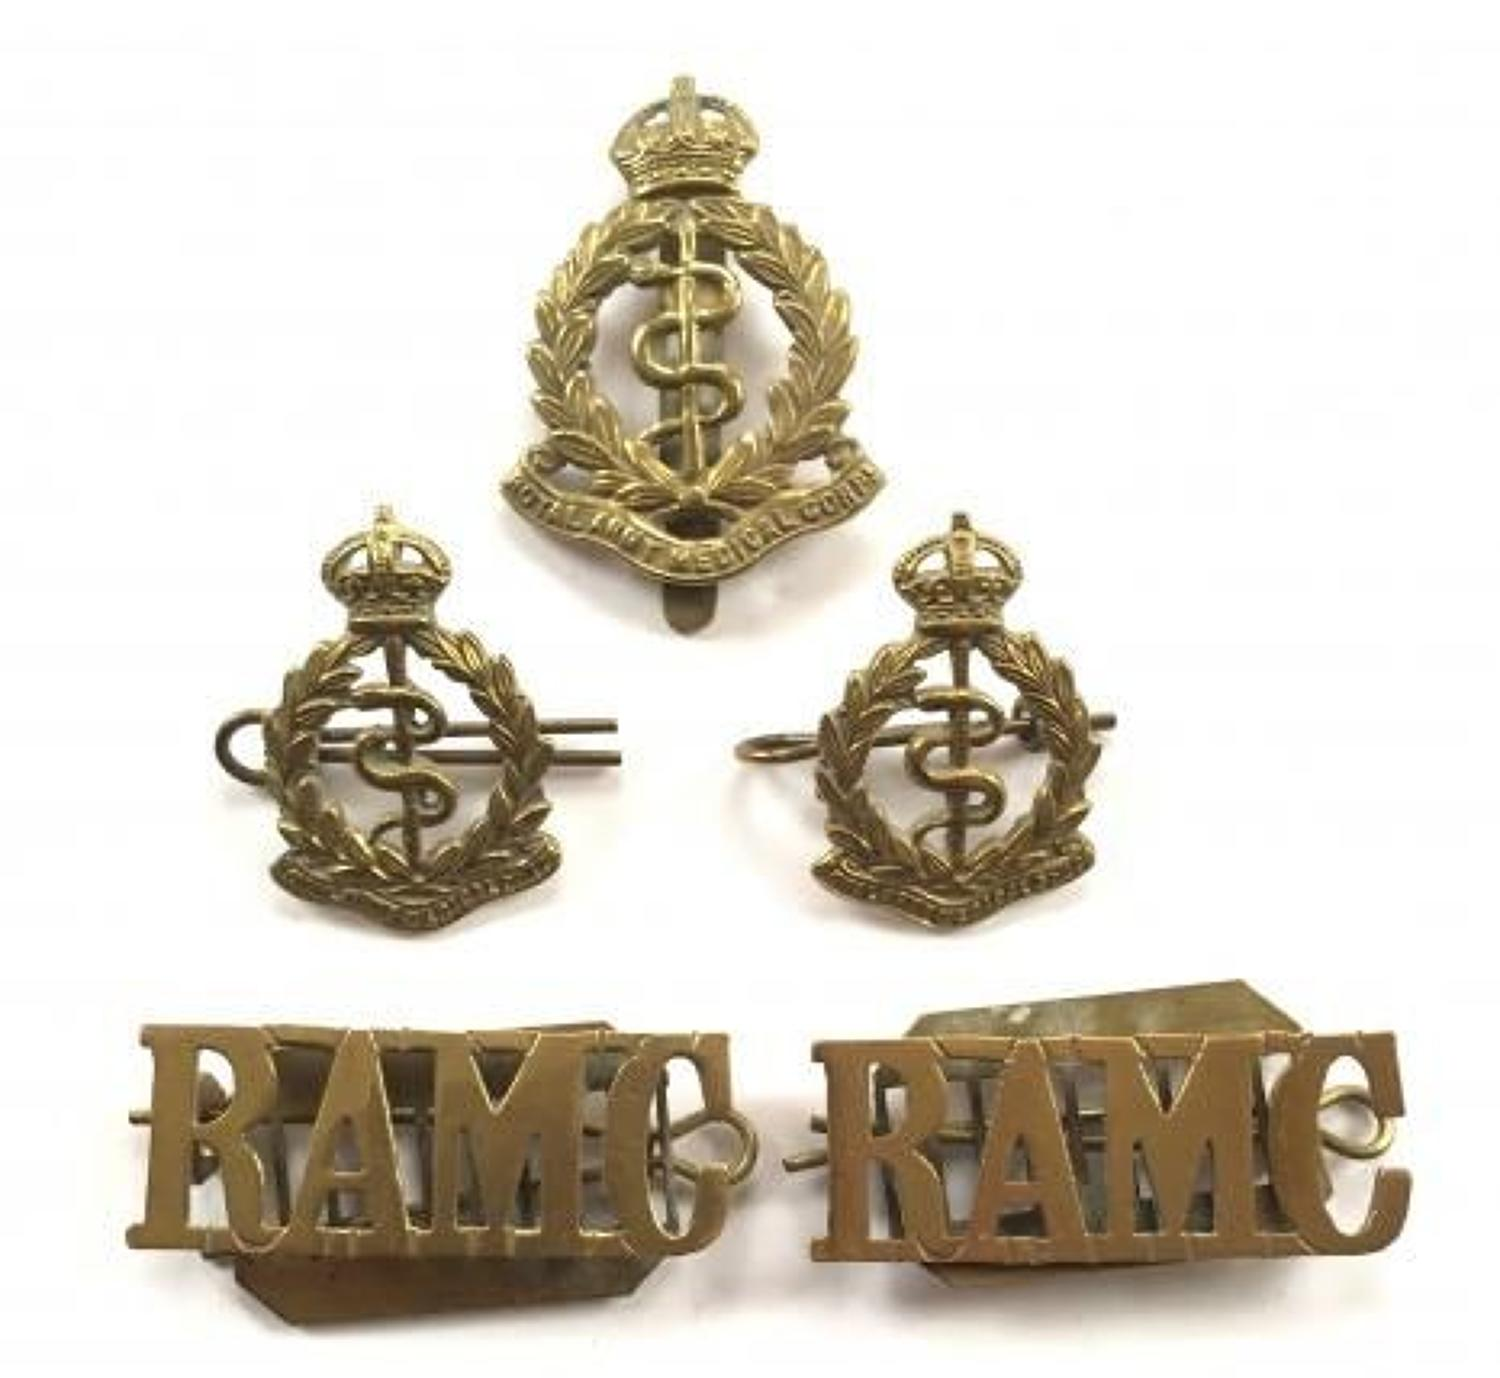 WW1 Period RAMC Royal Army Medical Corps Badges.